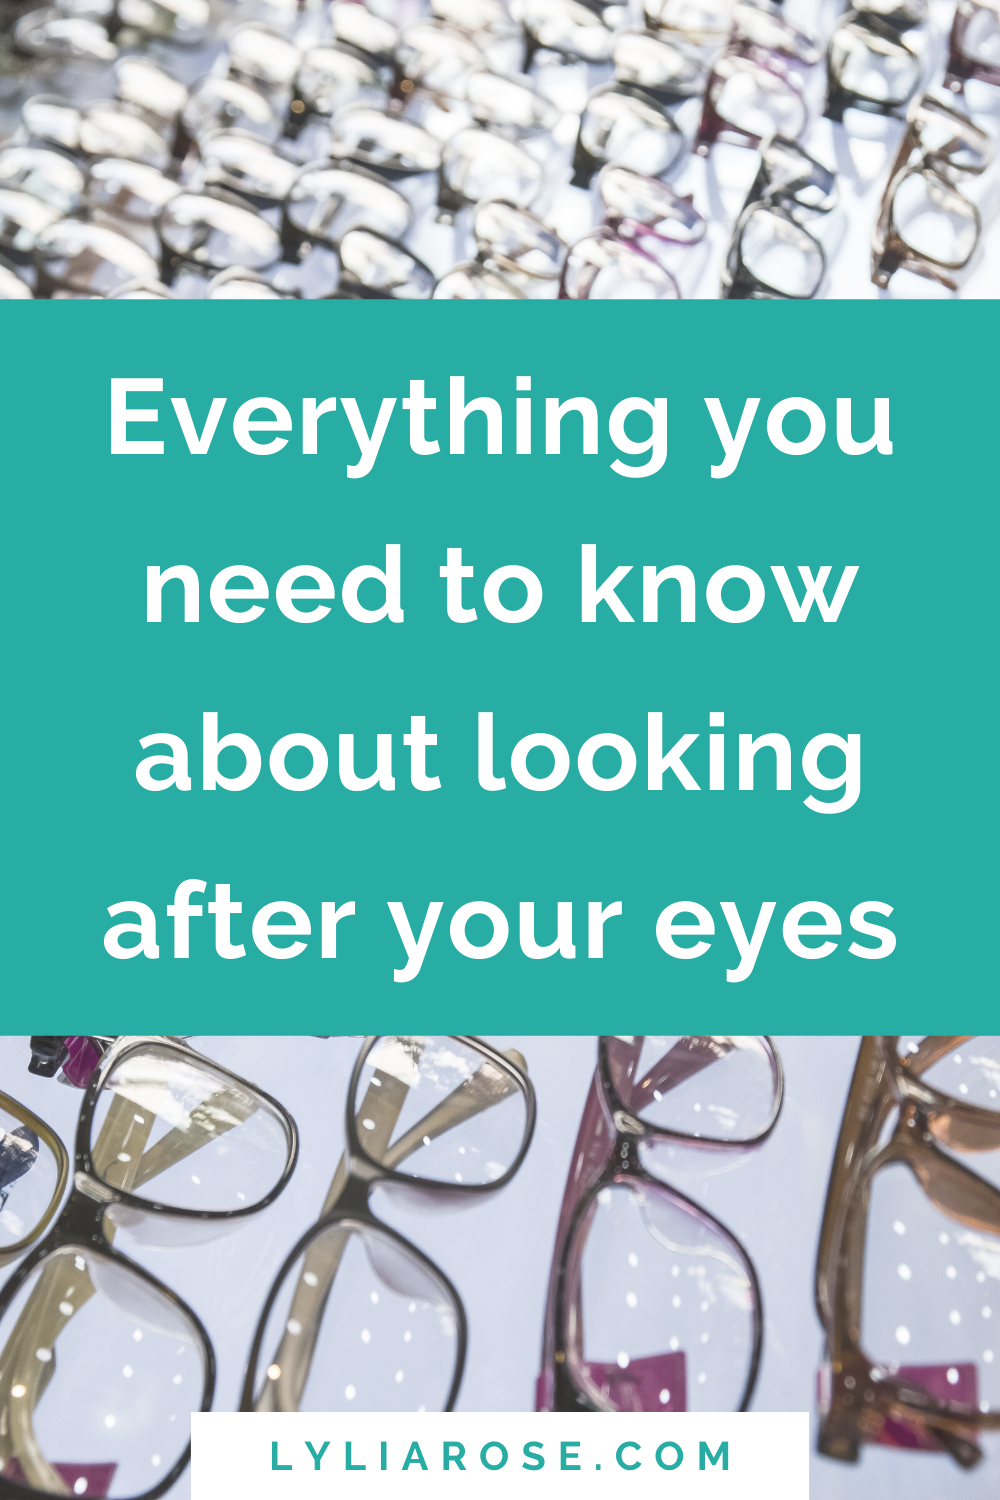 Everything you need to know about looking after your eyes (2)